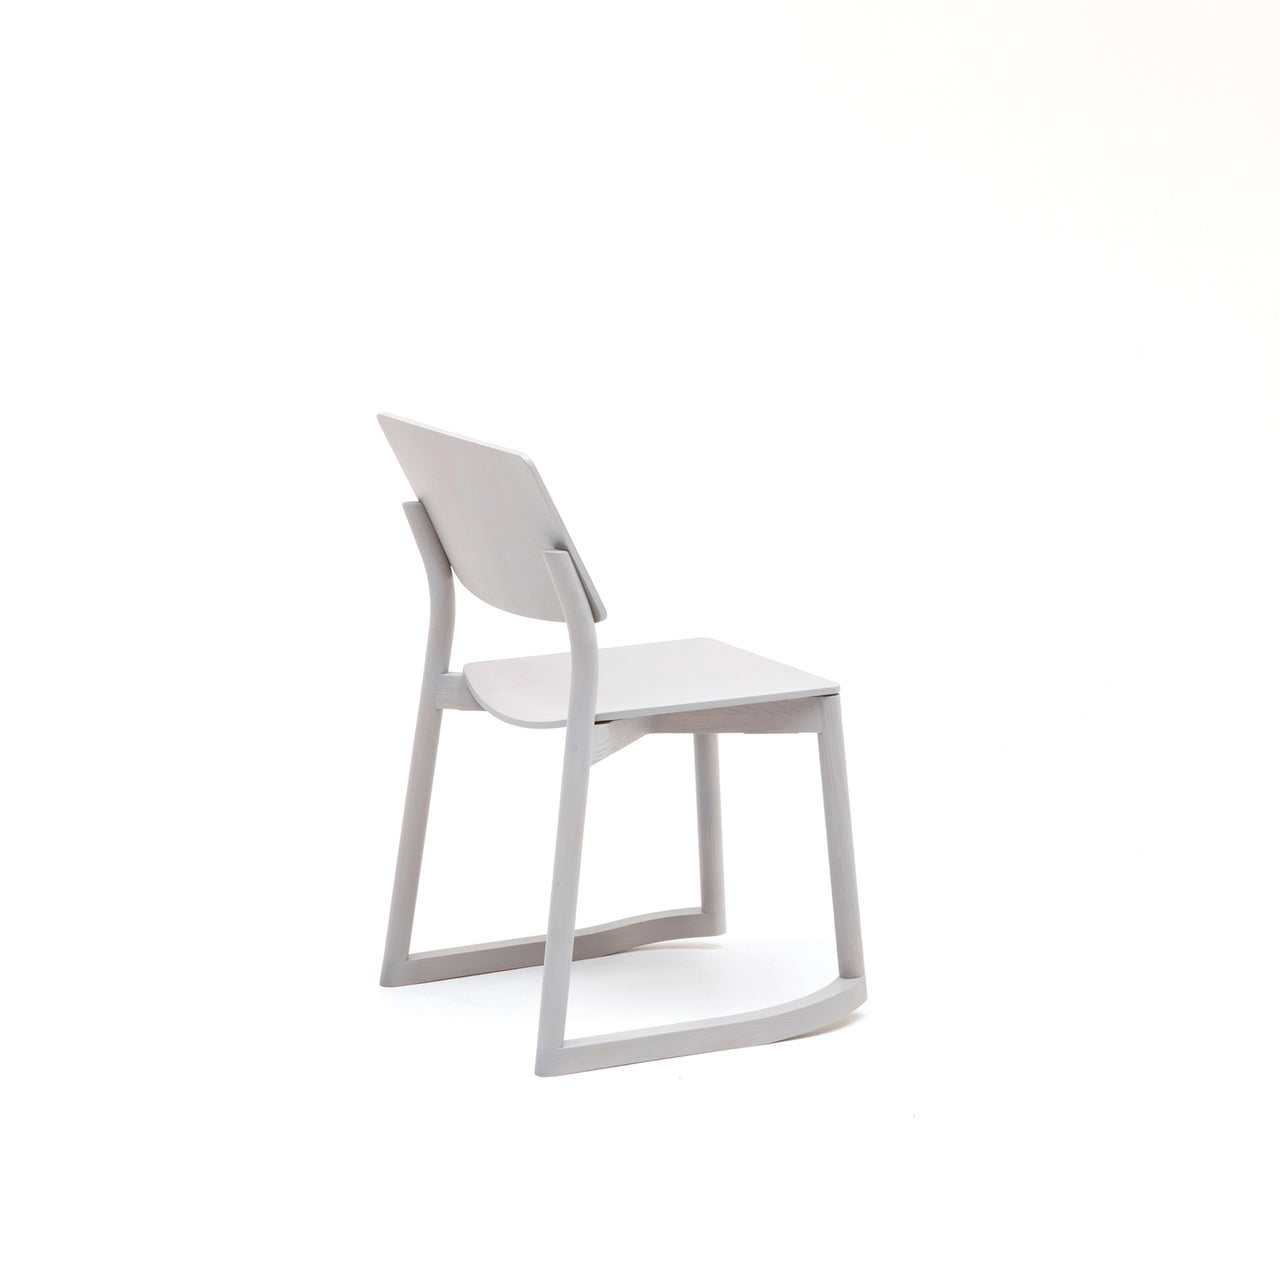 Panorama Chair With Runners: Grain Grey Oak